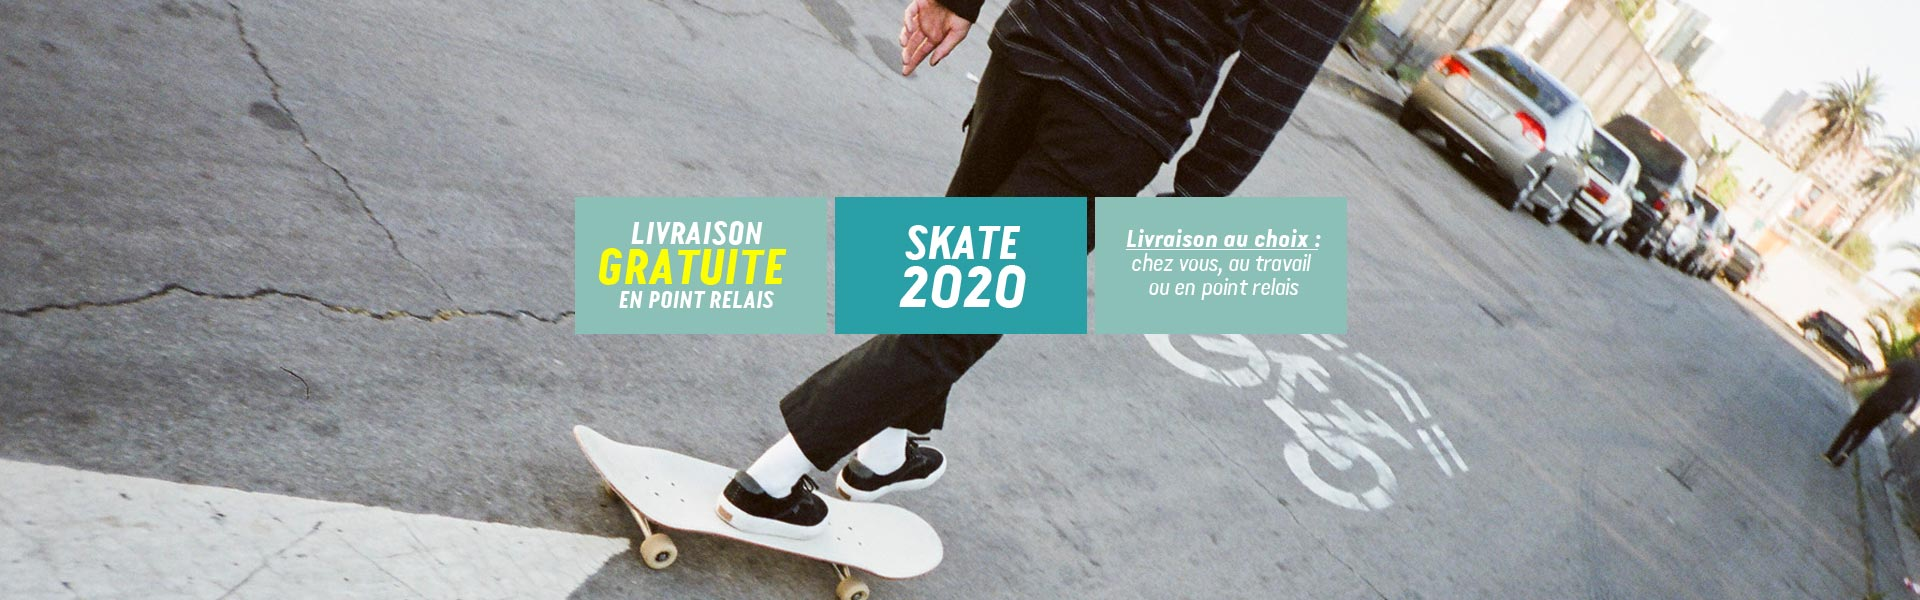 collection skate 2020